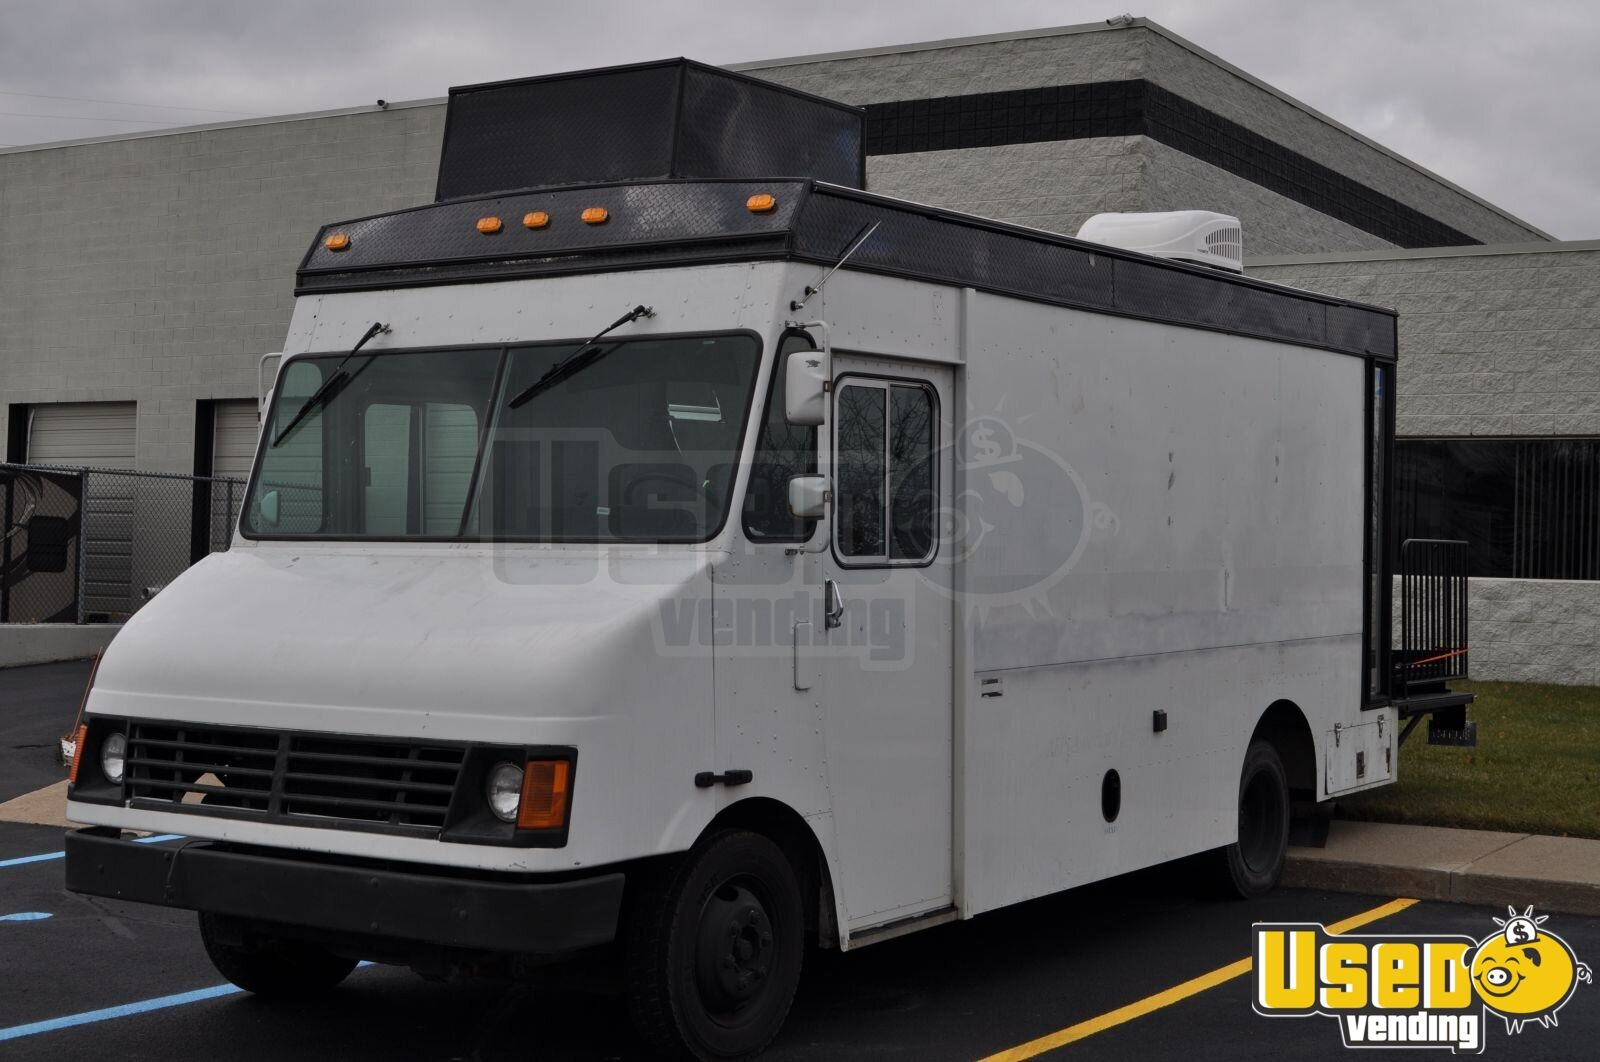 2000 Mt45 Mobile Hair Salon Truck Air Conditioning Michigan Diesel Engine for Sale - 2